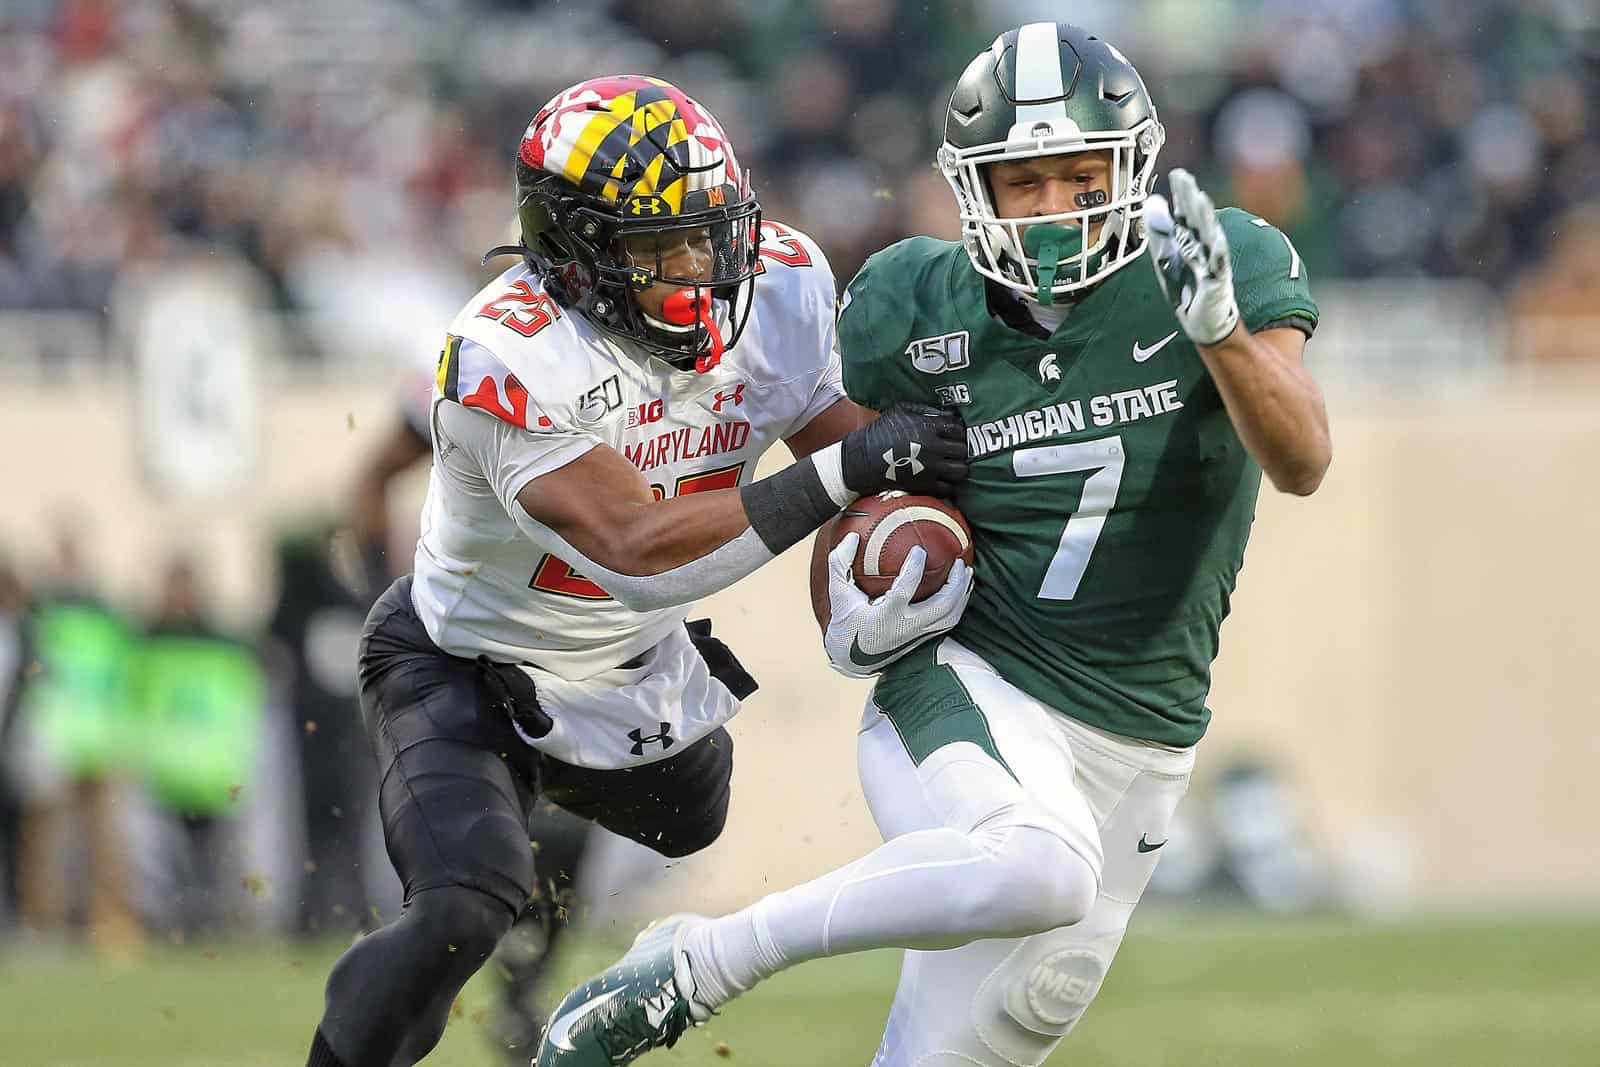 Michigan State at Maryland football game canceled again